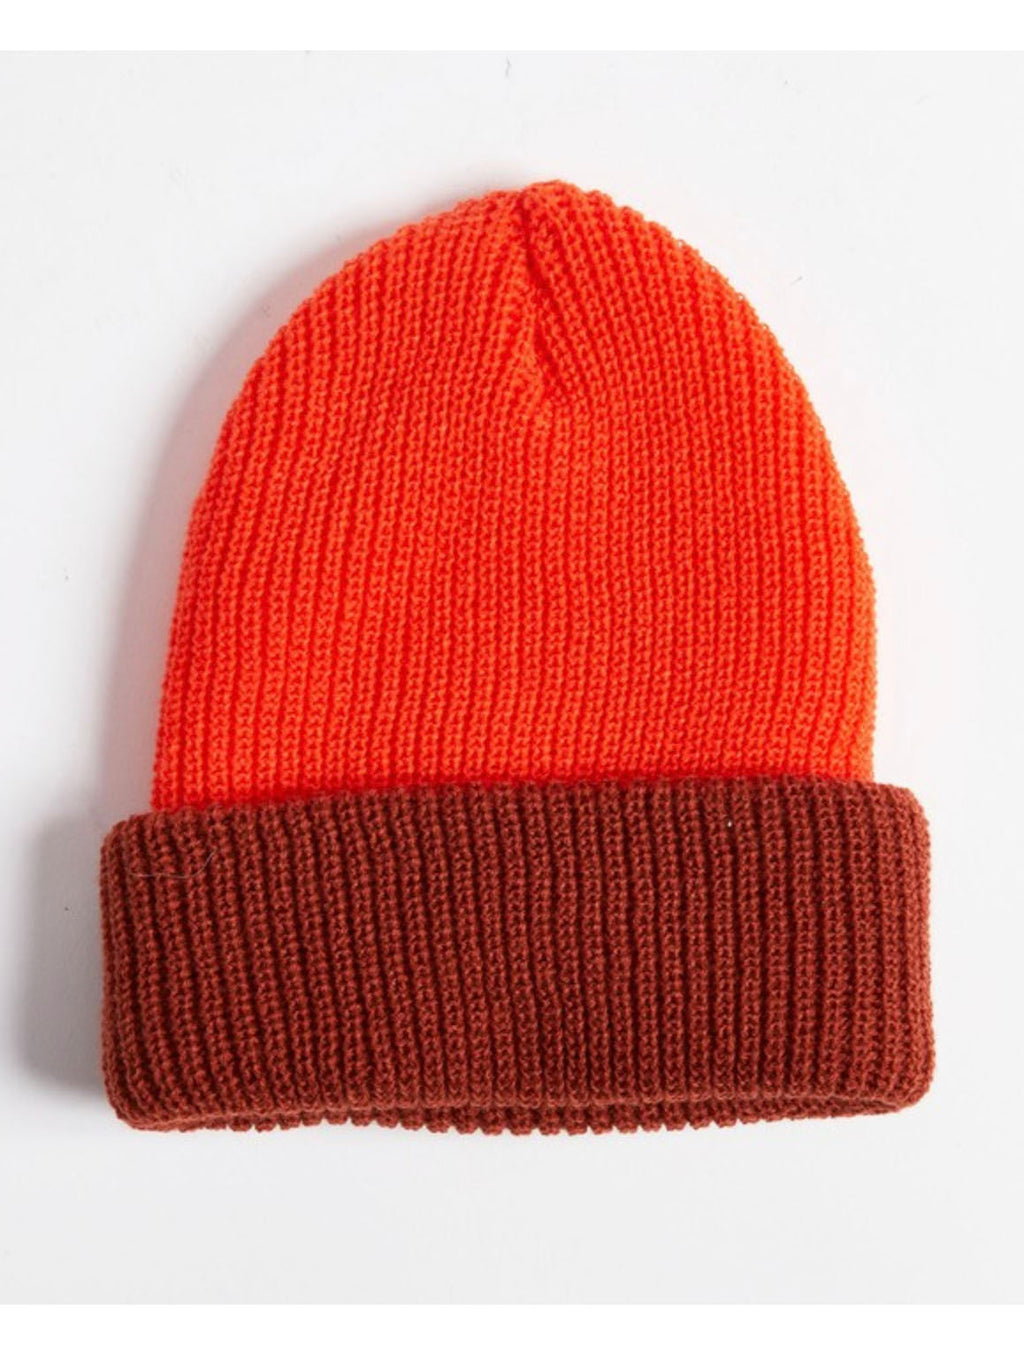 Billabong Roamer Beanie in Tango Red